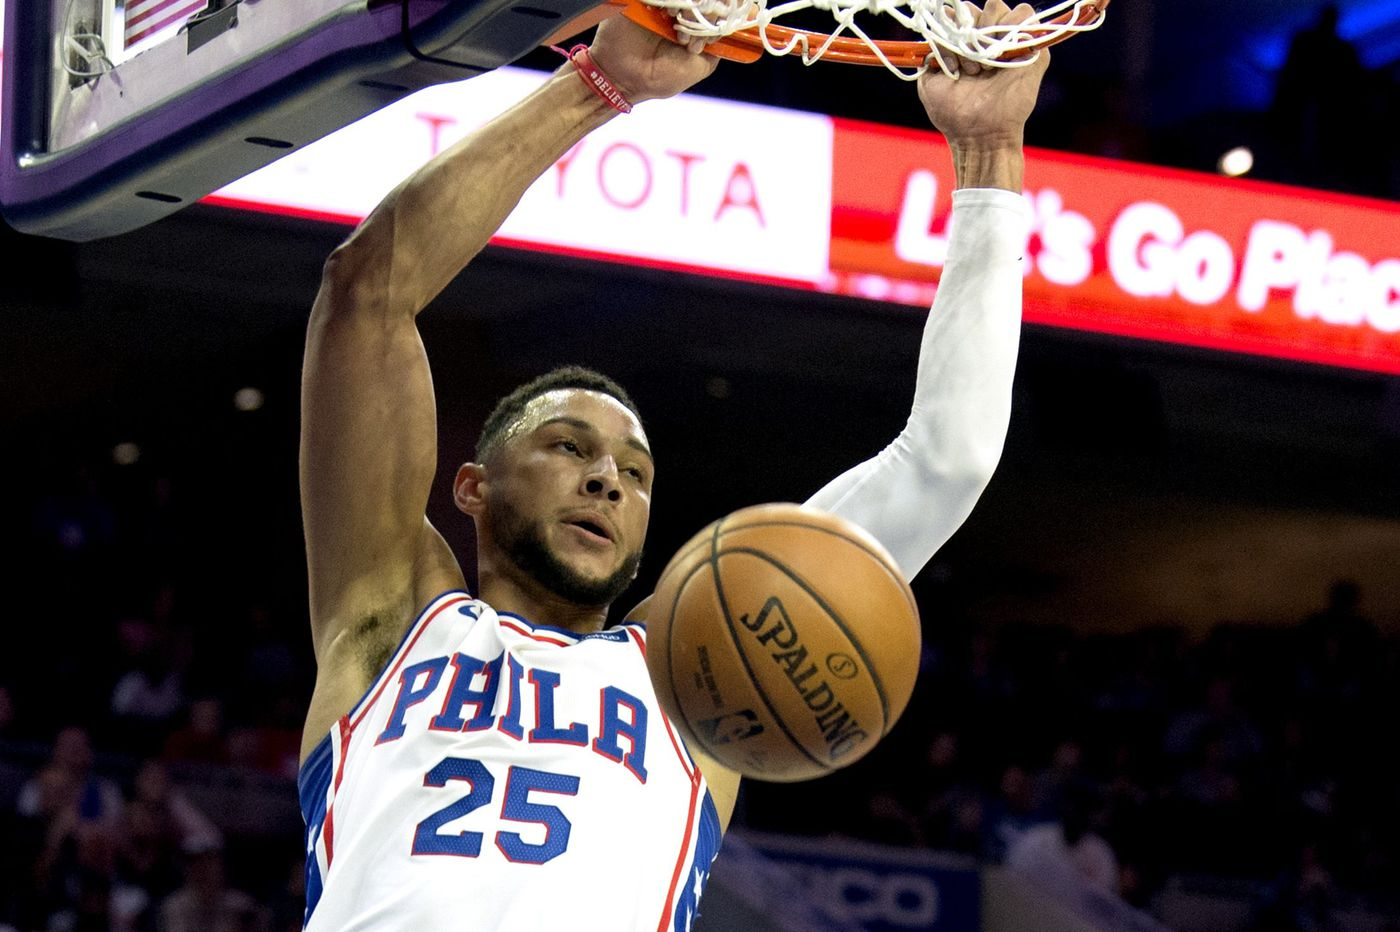 Sixers don't care about Celtics rivalry, just winning